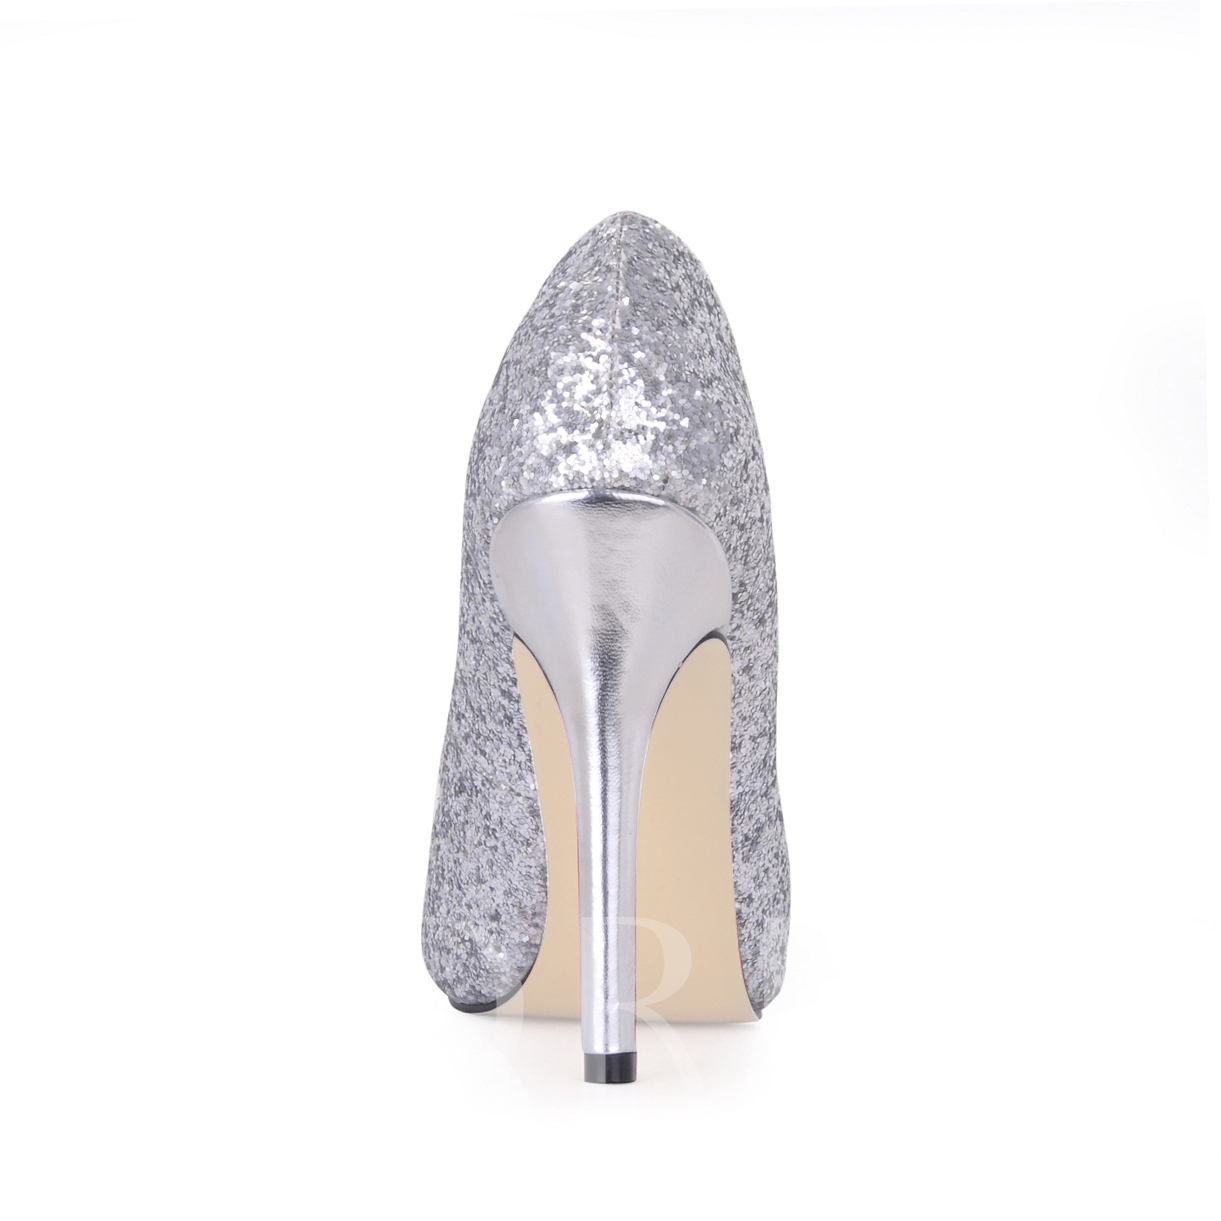 Shining Silver Stiletto Heels Peep Toe Prom/Evening Shoes